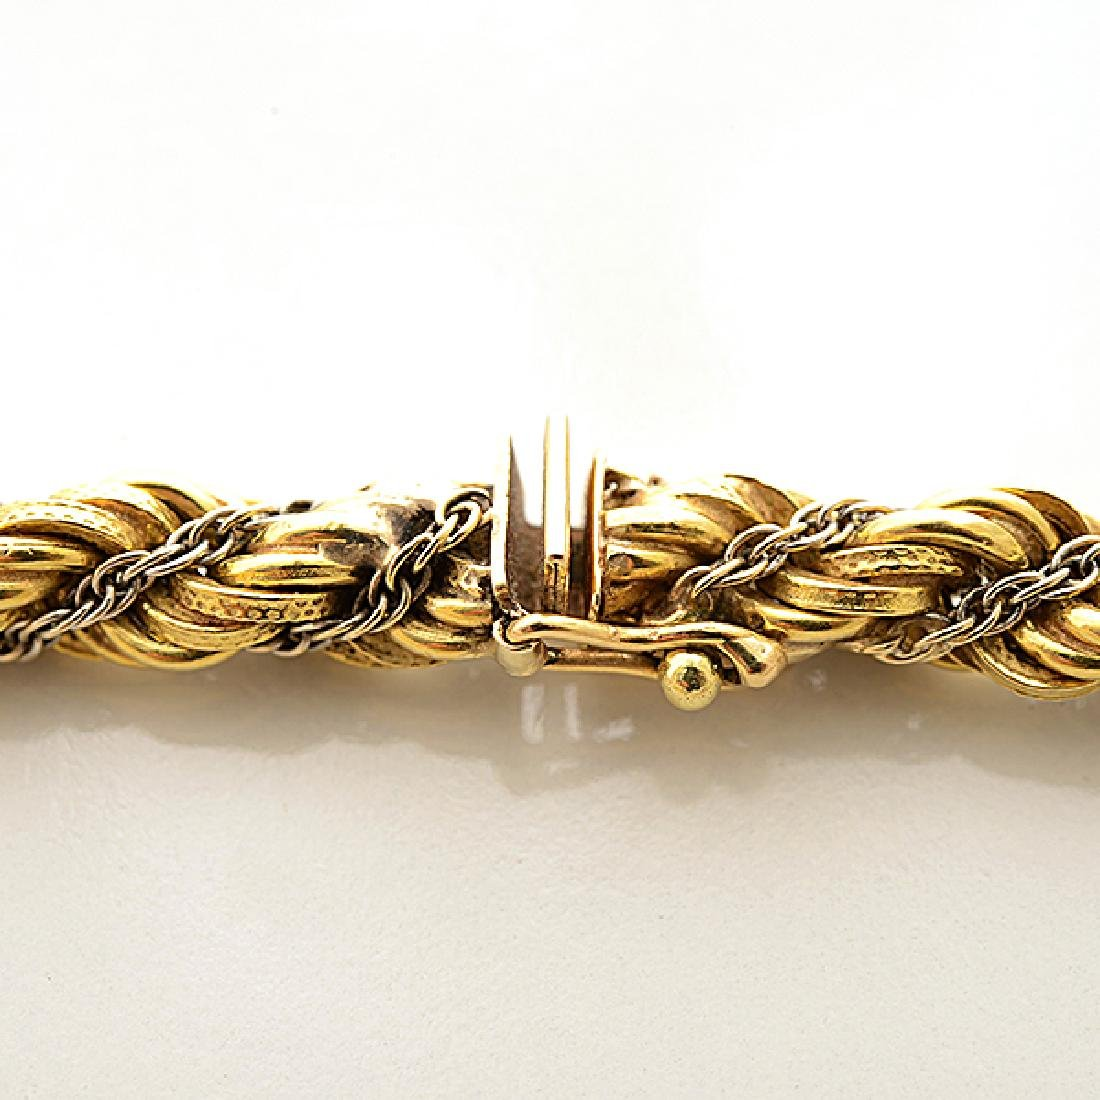 18k Gold Long Chain Necklace. - 3